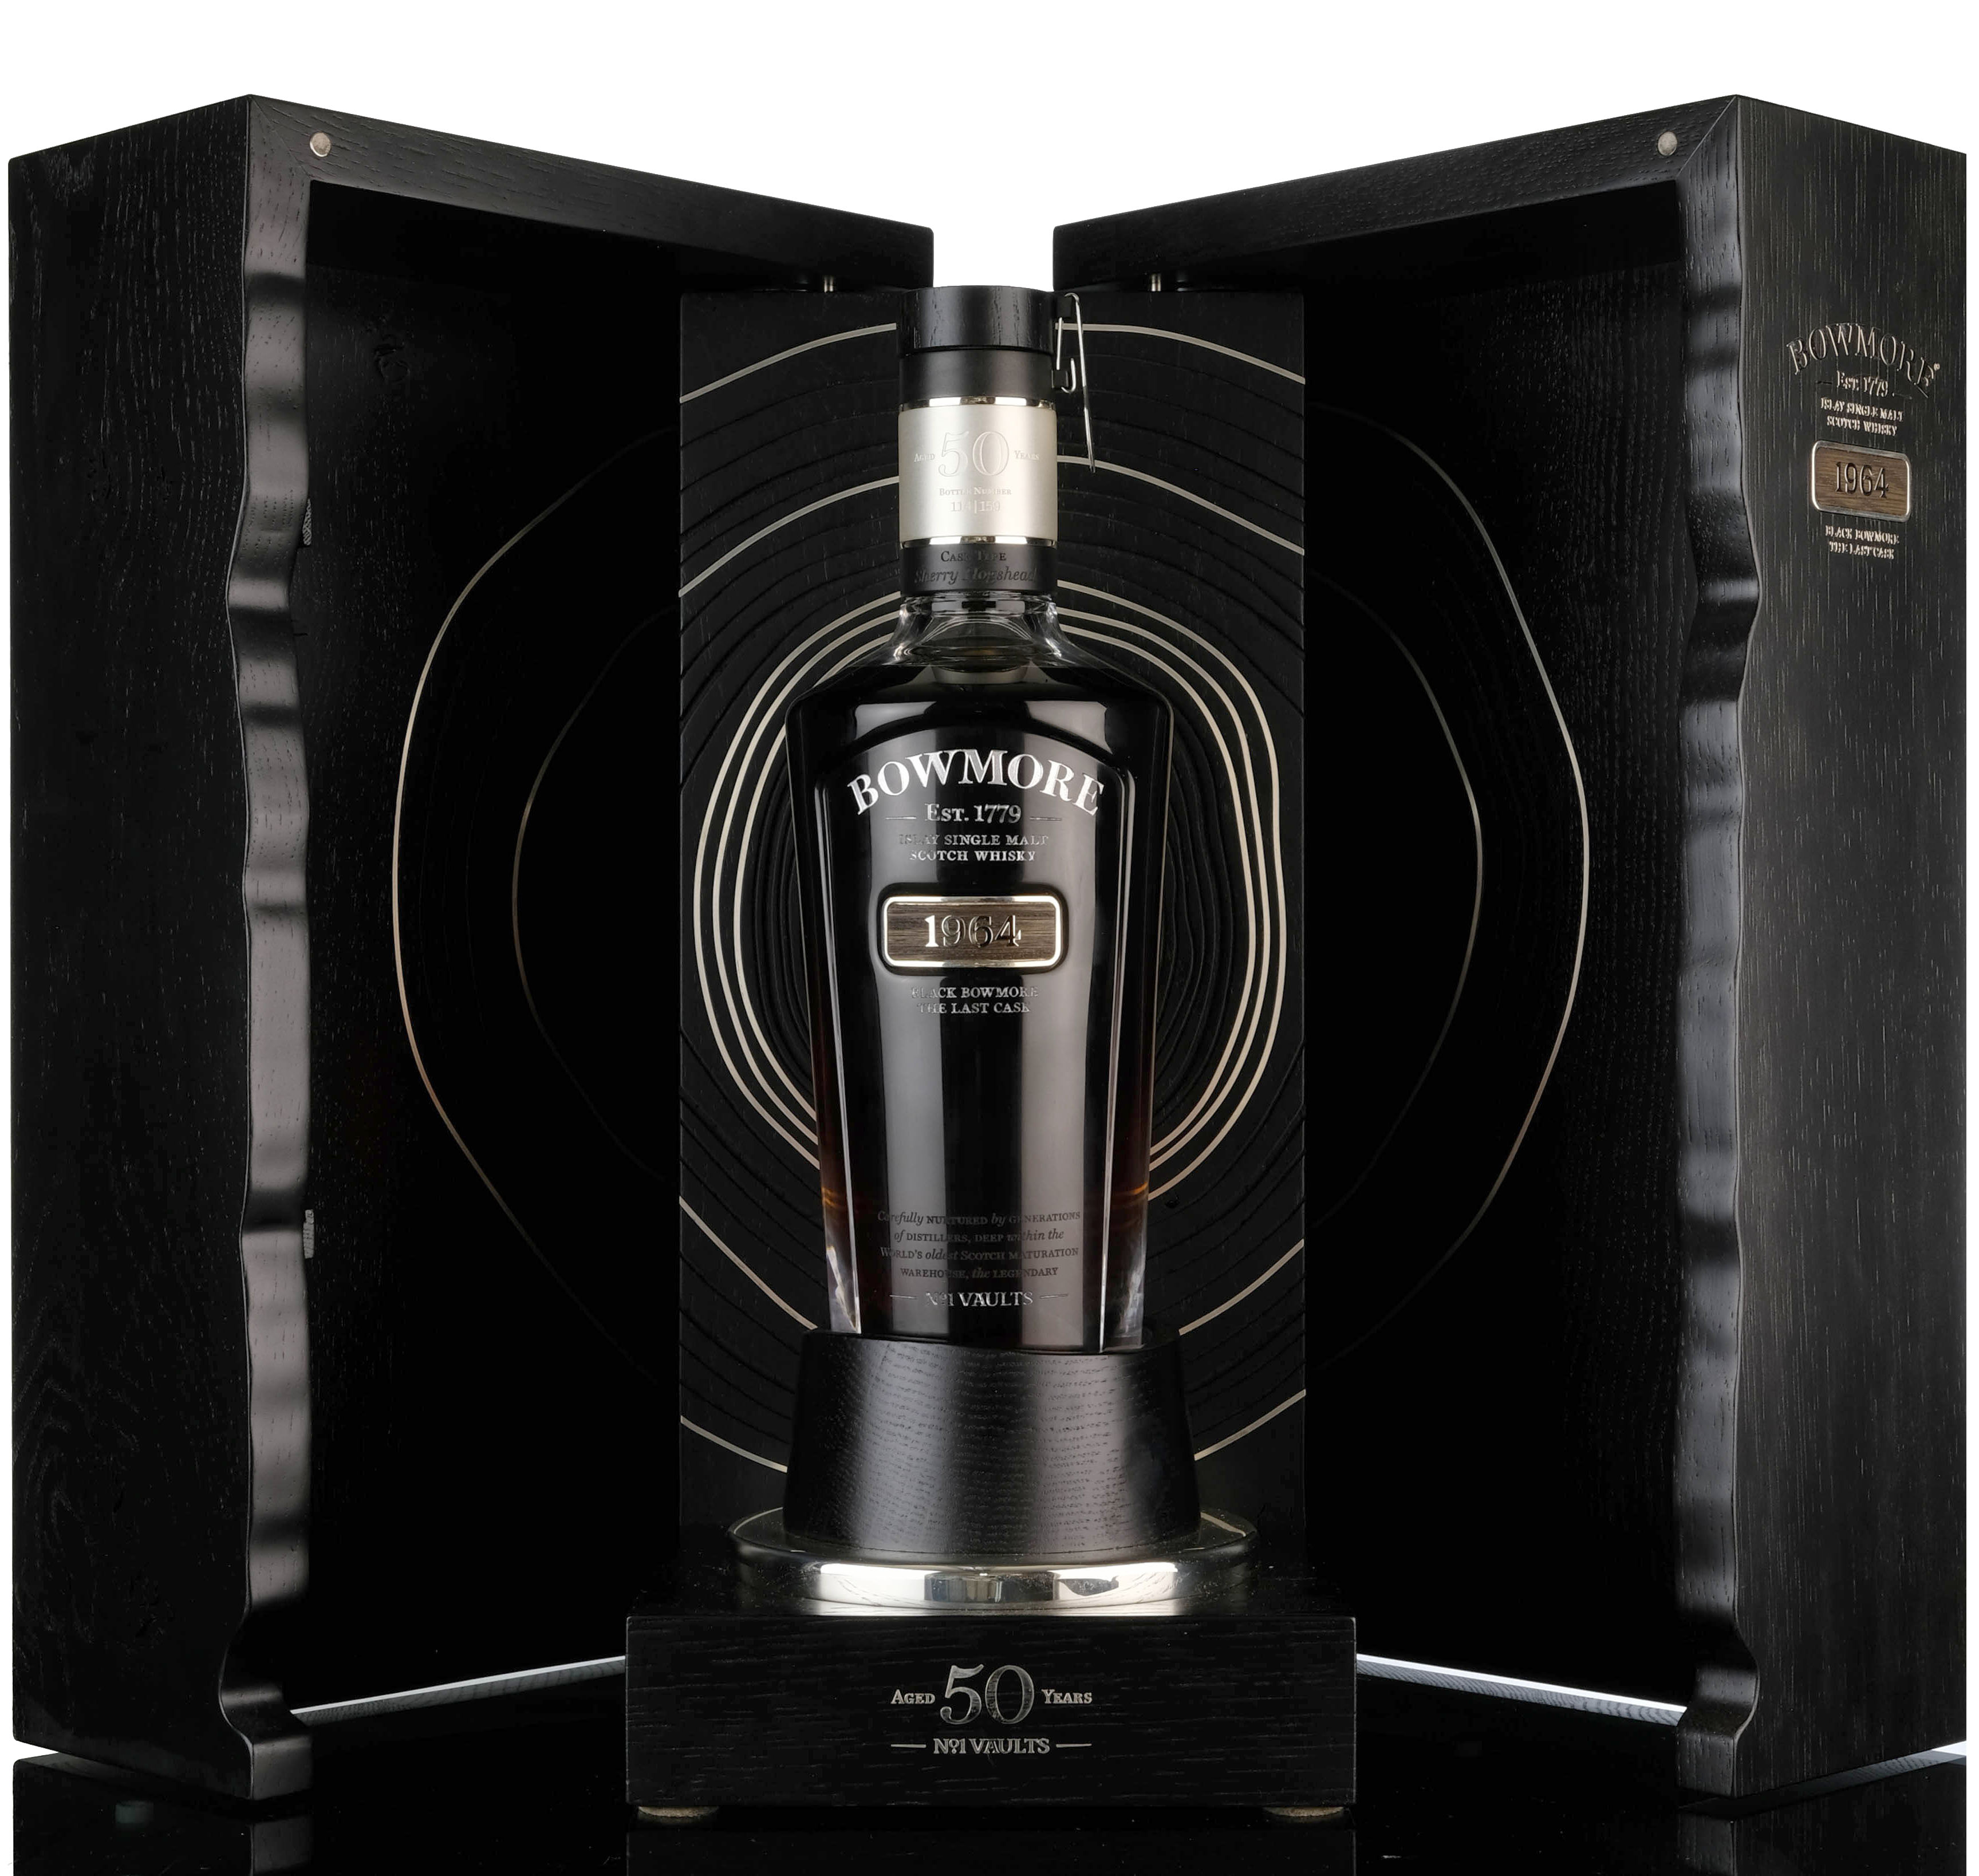 black bowmore 1964 - 50 year old - the last cask